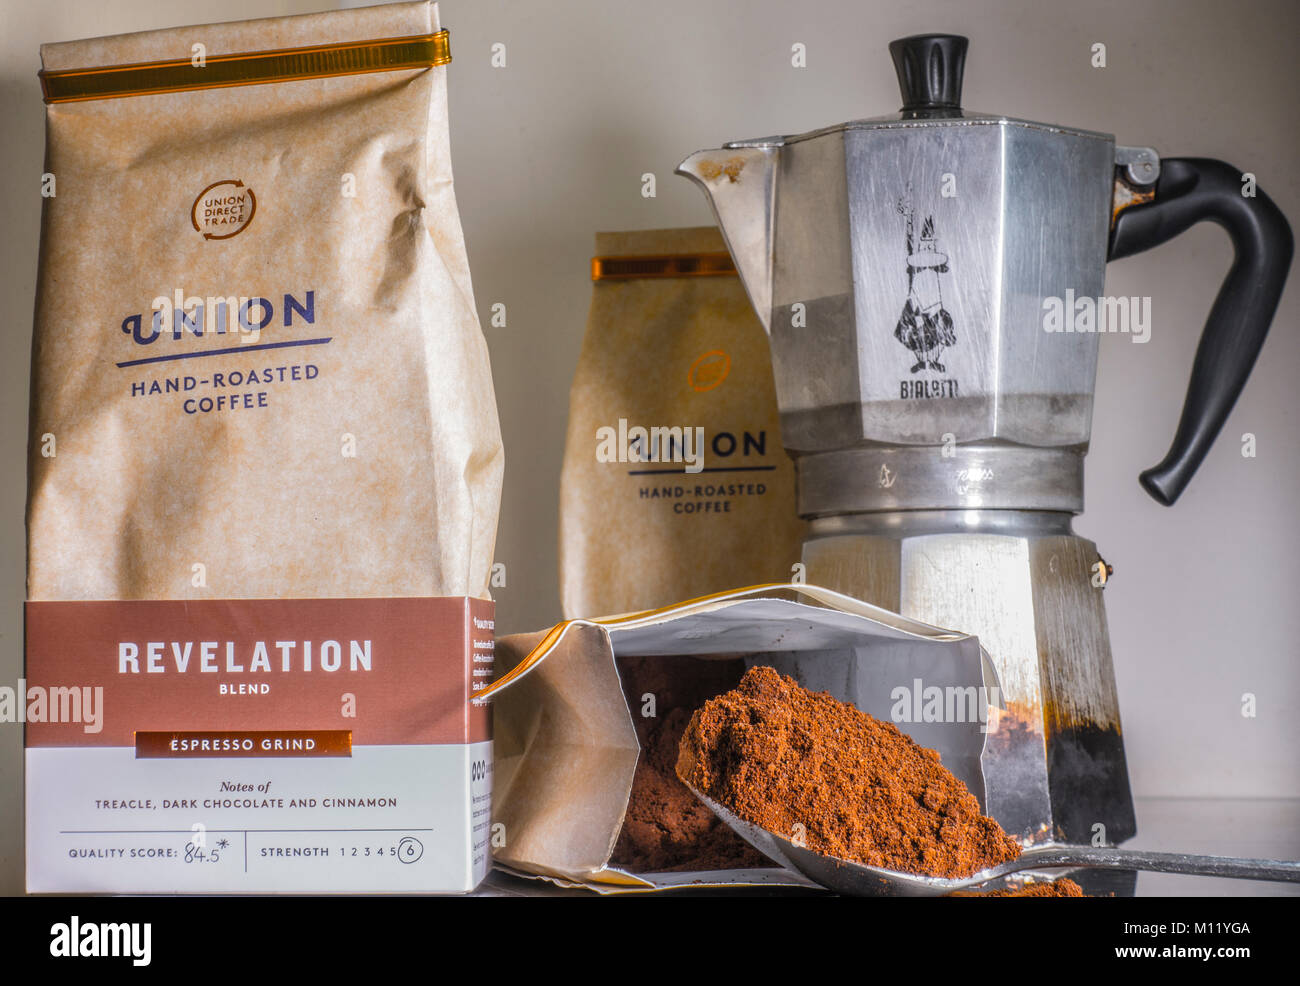 Spoonful of ground Arabica coffee, next to packs of Union hand-roasted, espresso grind, and a traditional Bialetti - Stock Image